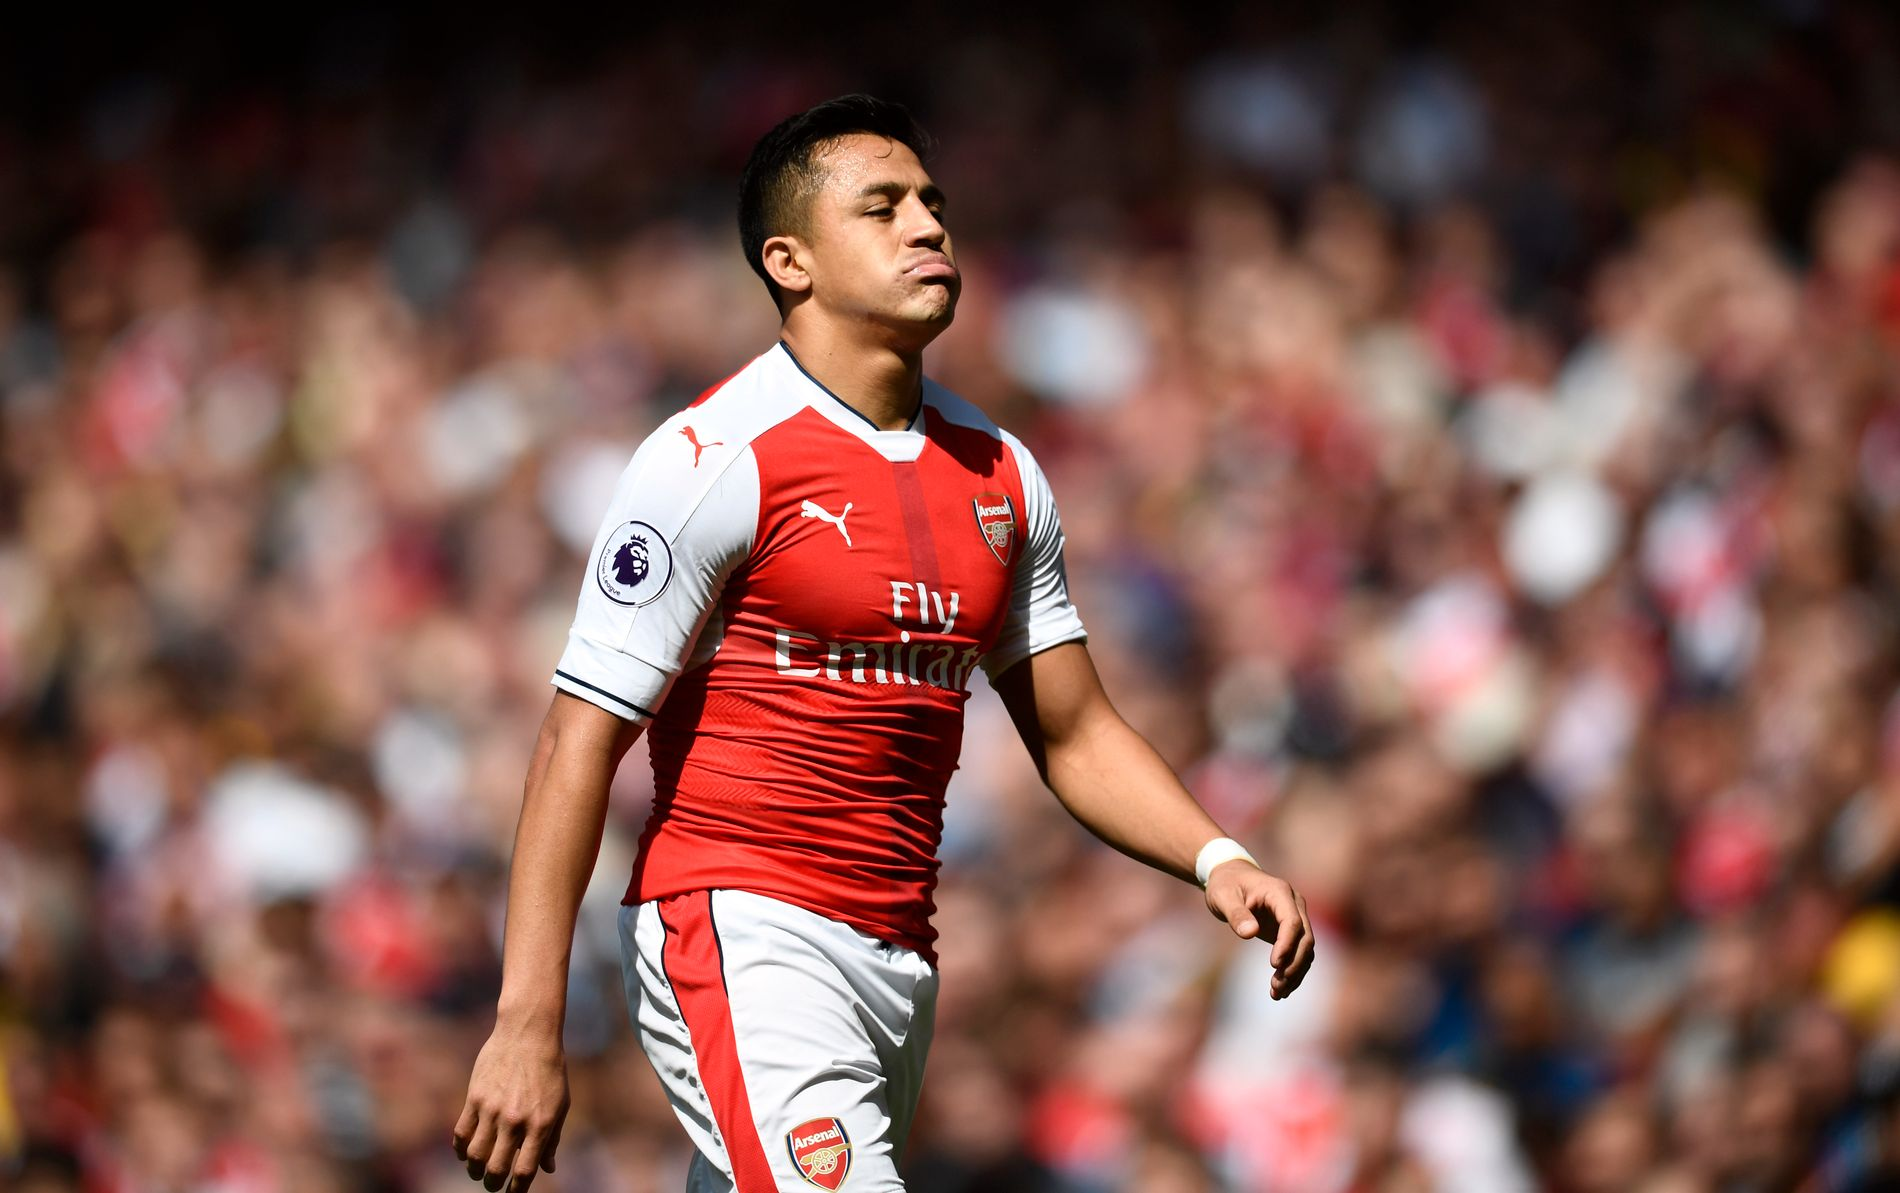 PÅ VEI BORT: Alexis Sanchez skal ha bestemt seg for at Arsenal-karrieren er over.